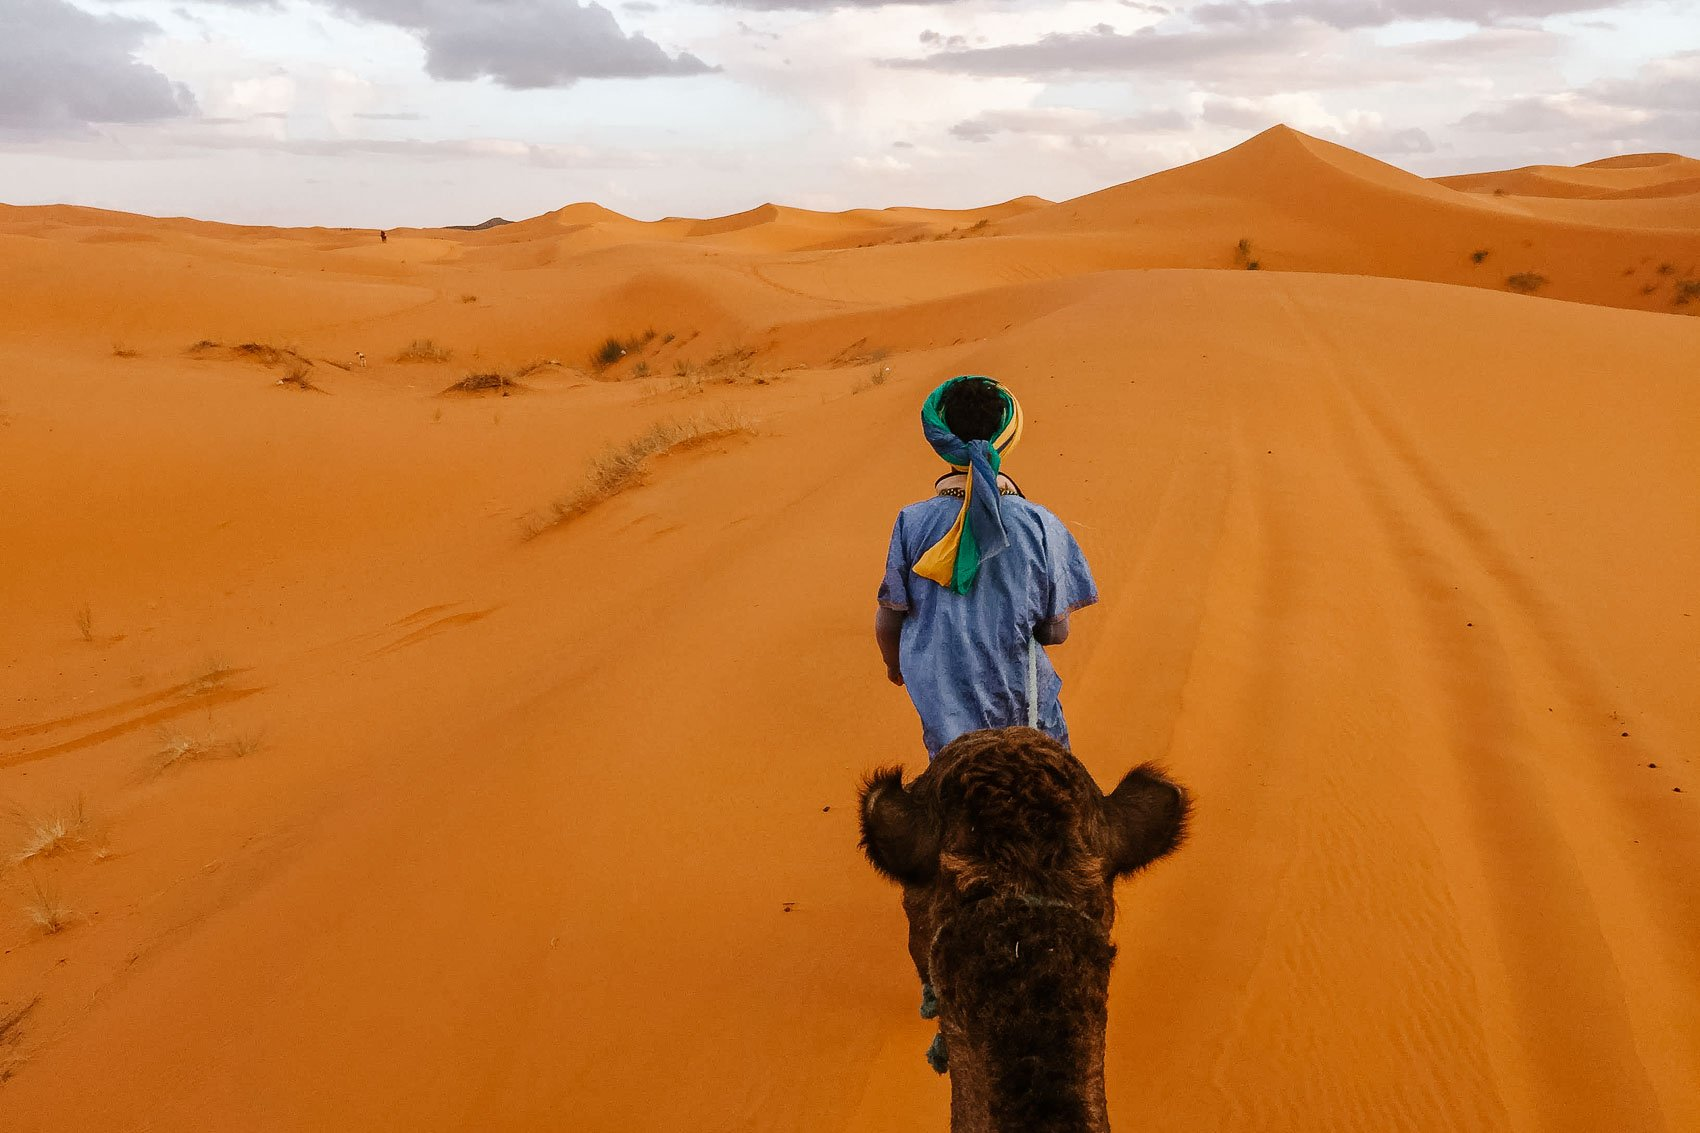 sahara desert with local pulling camel across dunes - bucket list travel one week itinerary